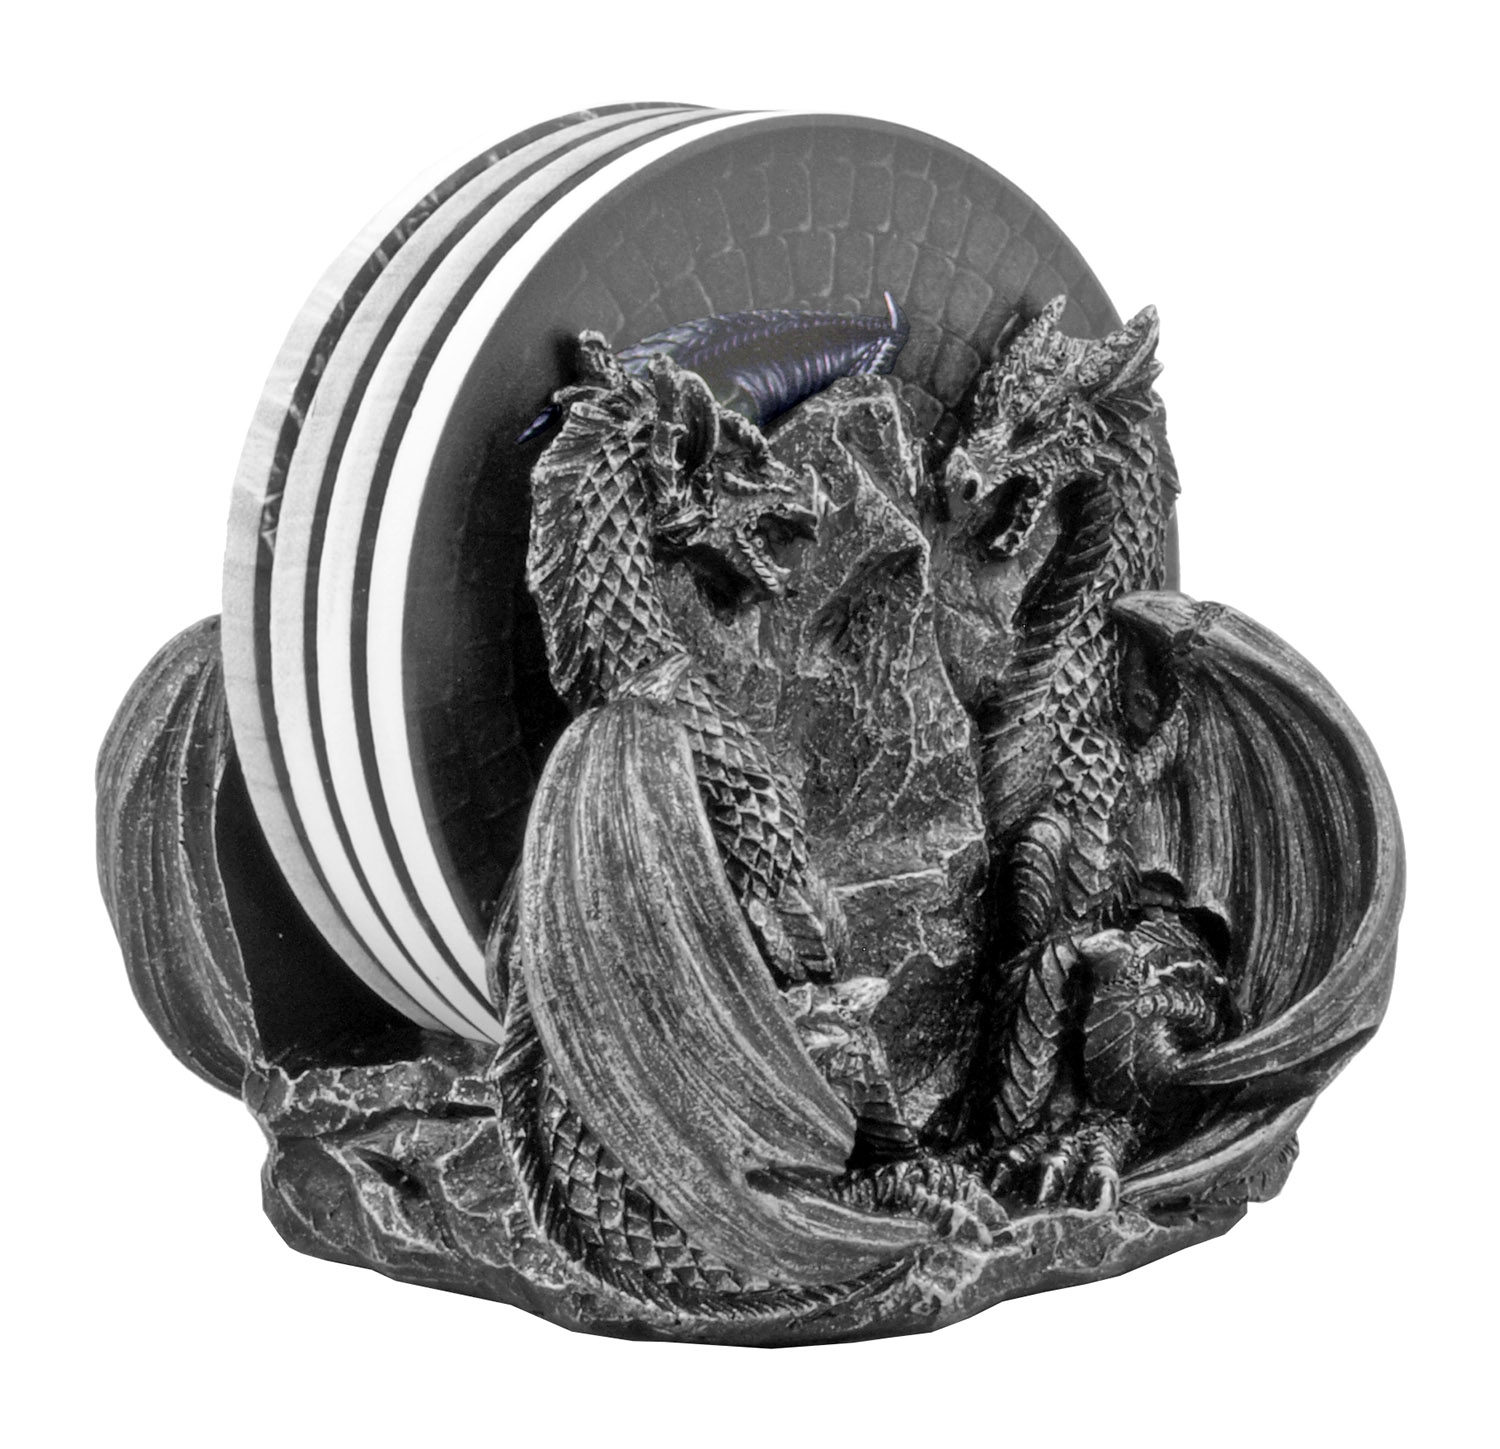 Fire and Fury Castle Dragon Drink Cup Coaster Holder - DWK